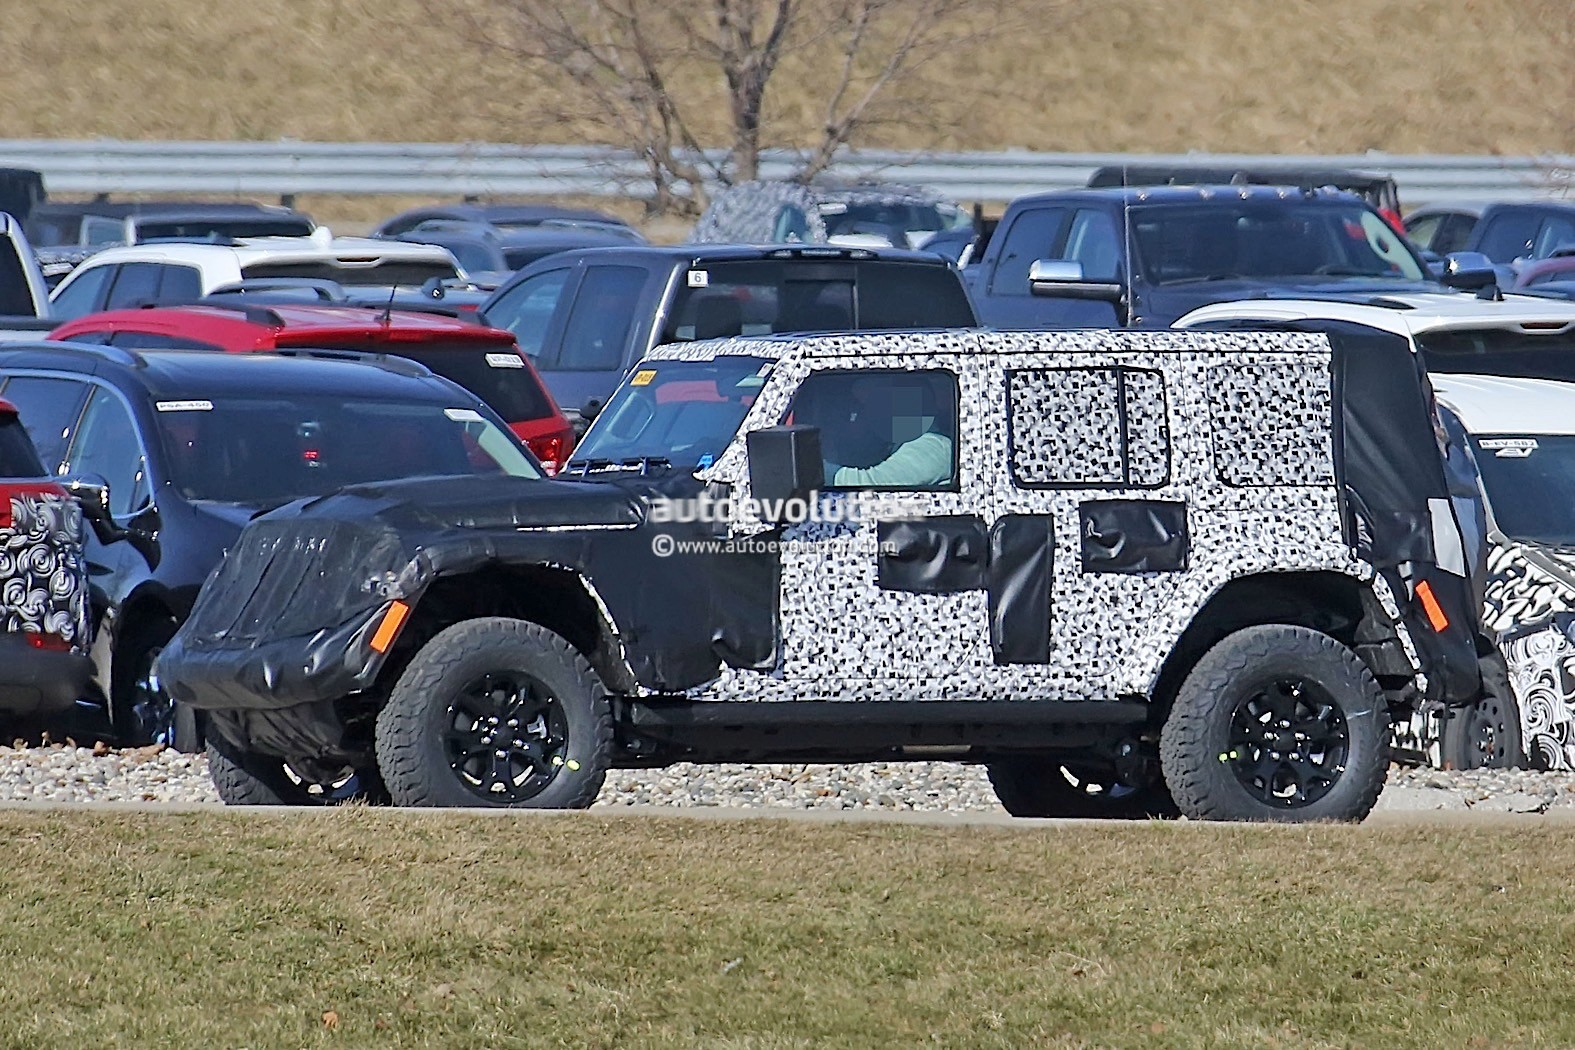 2018 jl wrangler unlimited rubicon leaked has fully removable roof and doors autoevolution. Black Bedroom Furniture Sets. Home Design Ideas